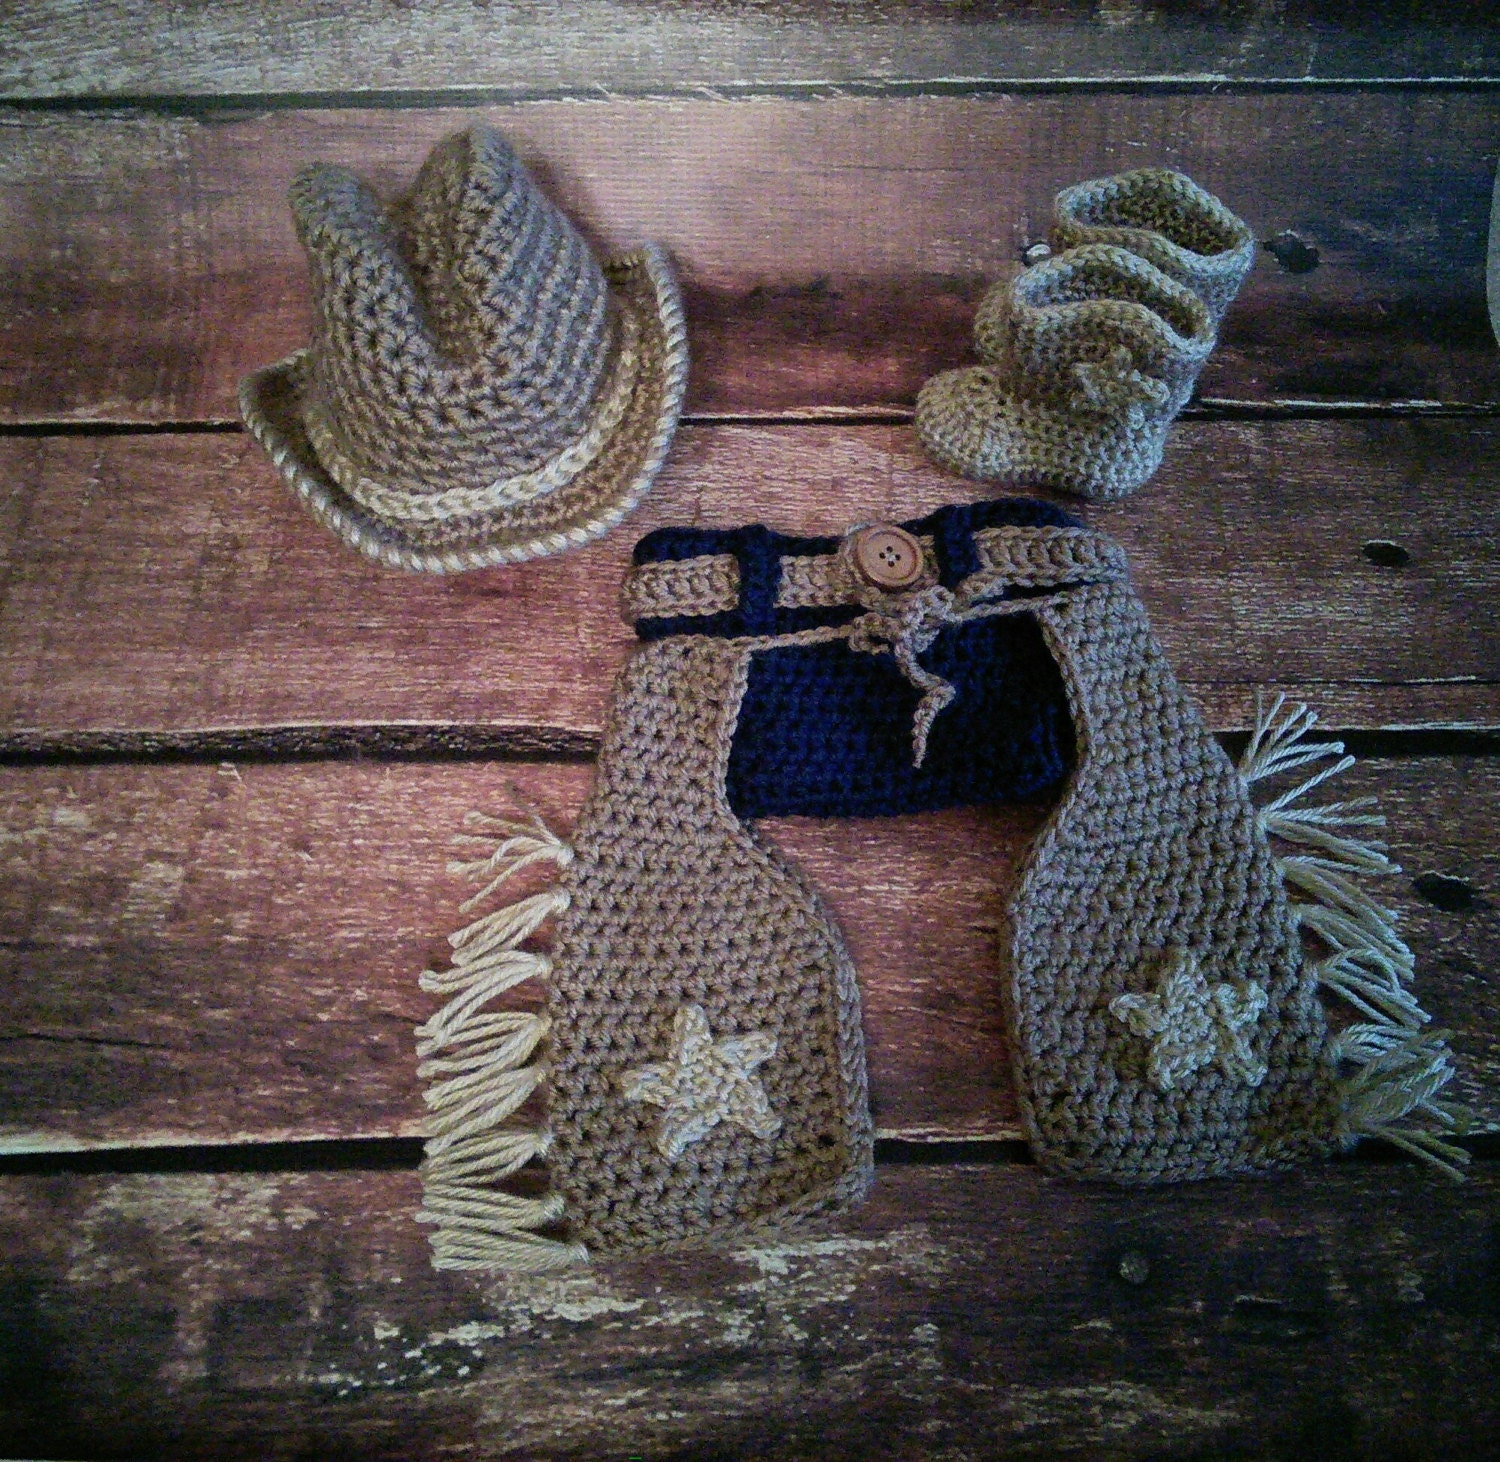 Crochet Baby Cowboy Chaps Pattern : Crochet Cowboy Chaps Diaper Cover Hat and Boot by ...